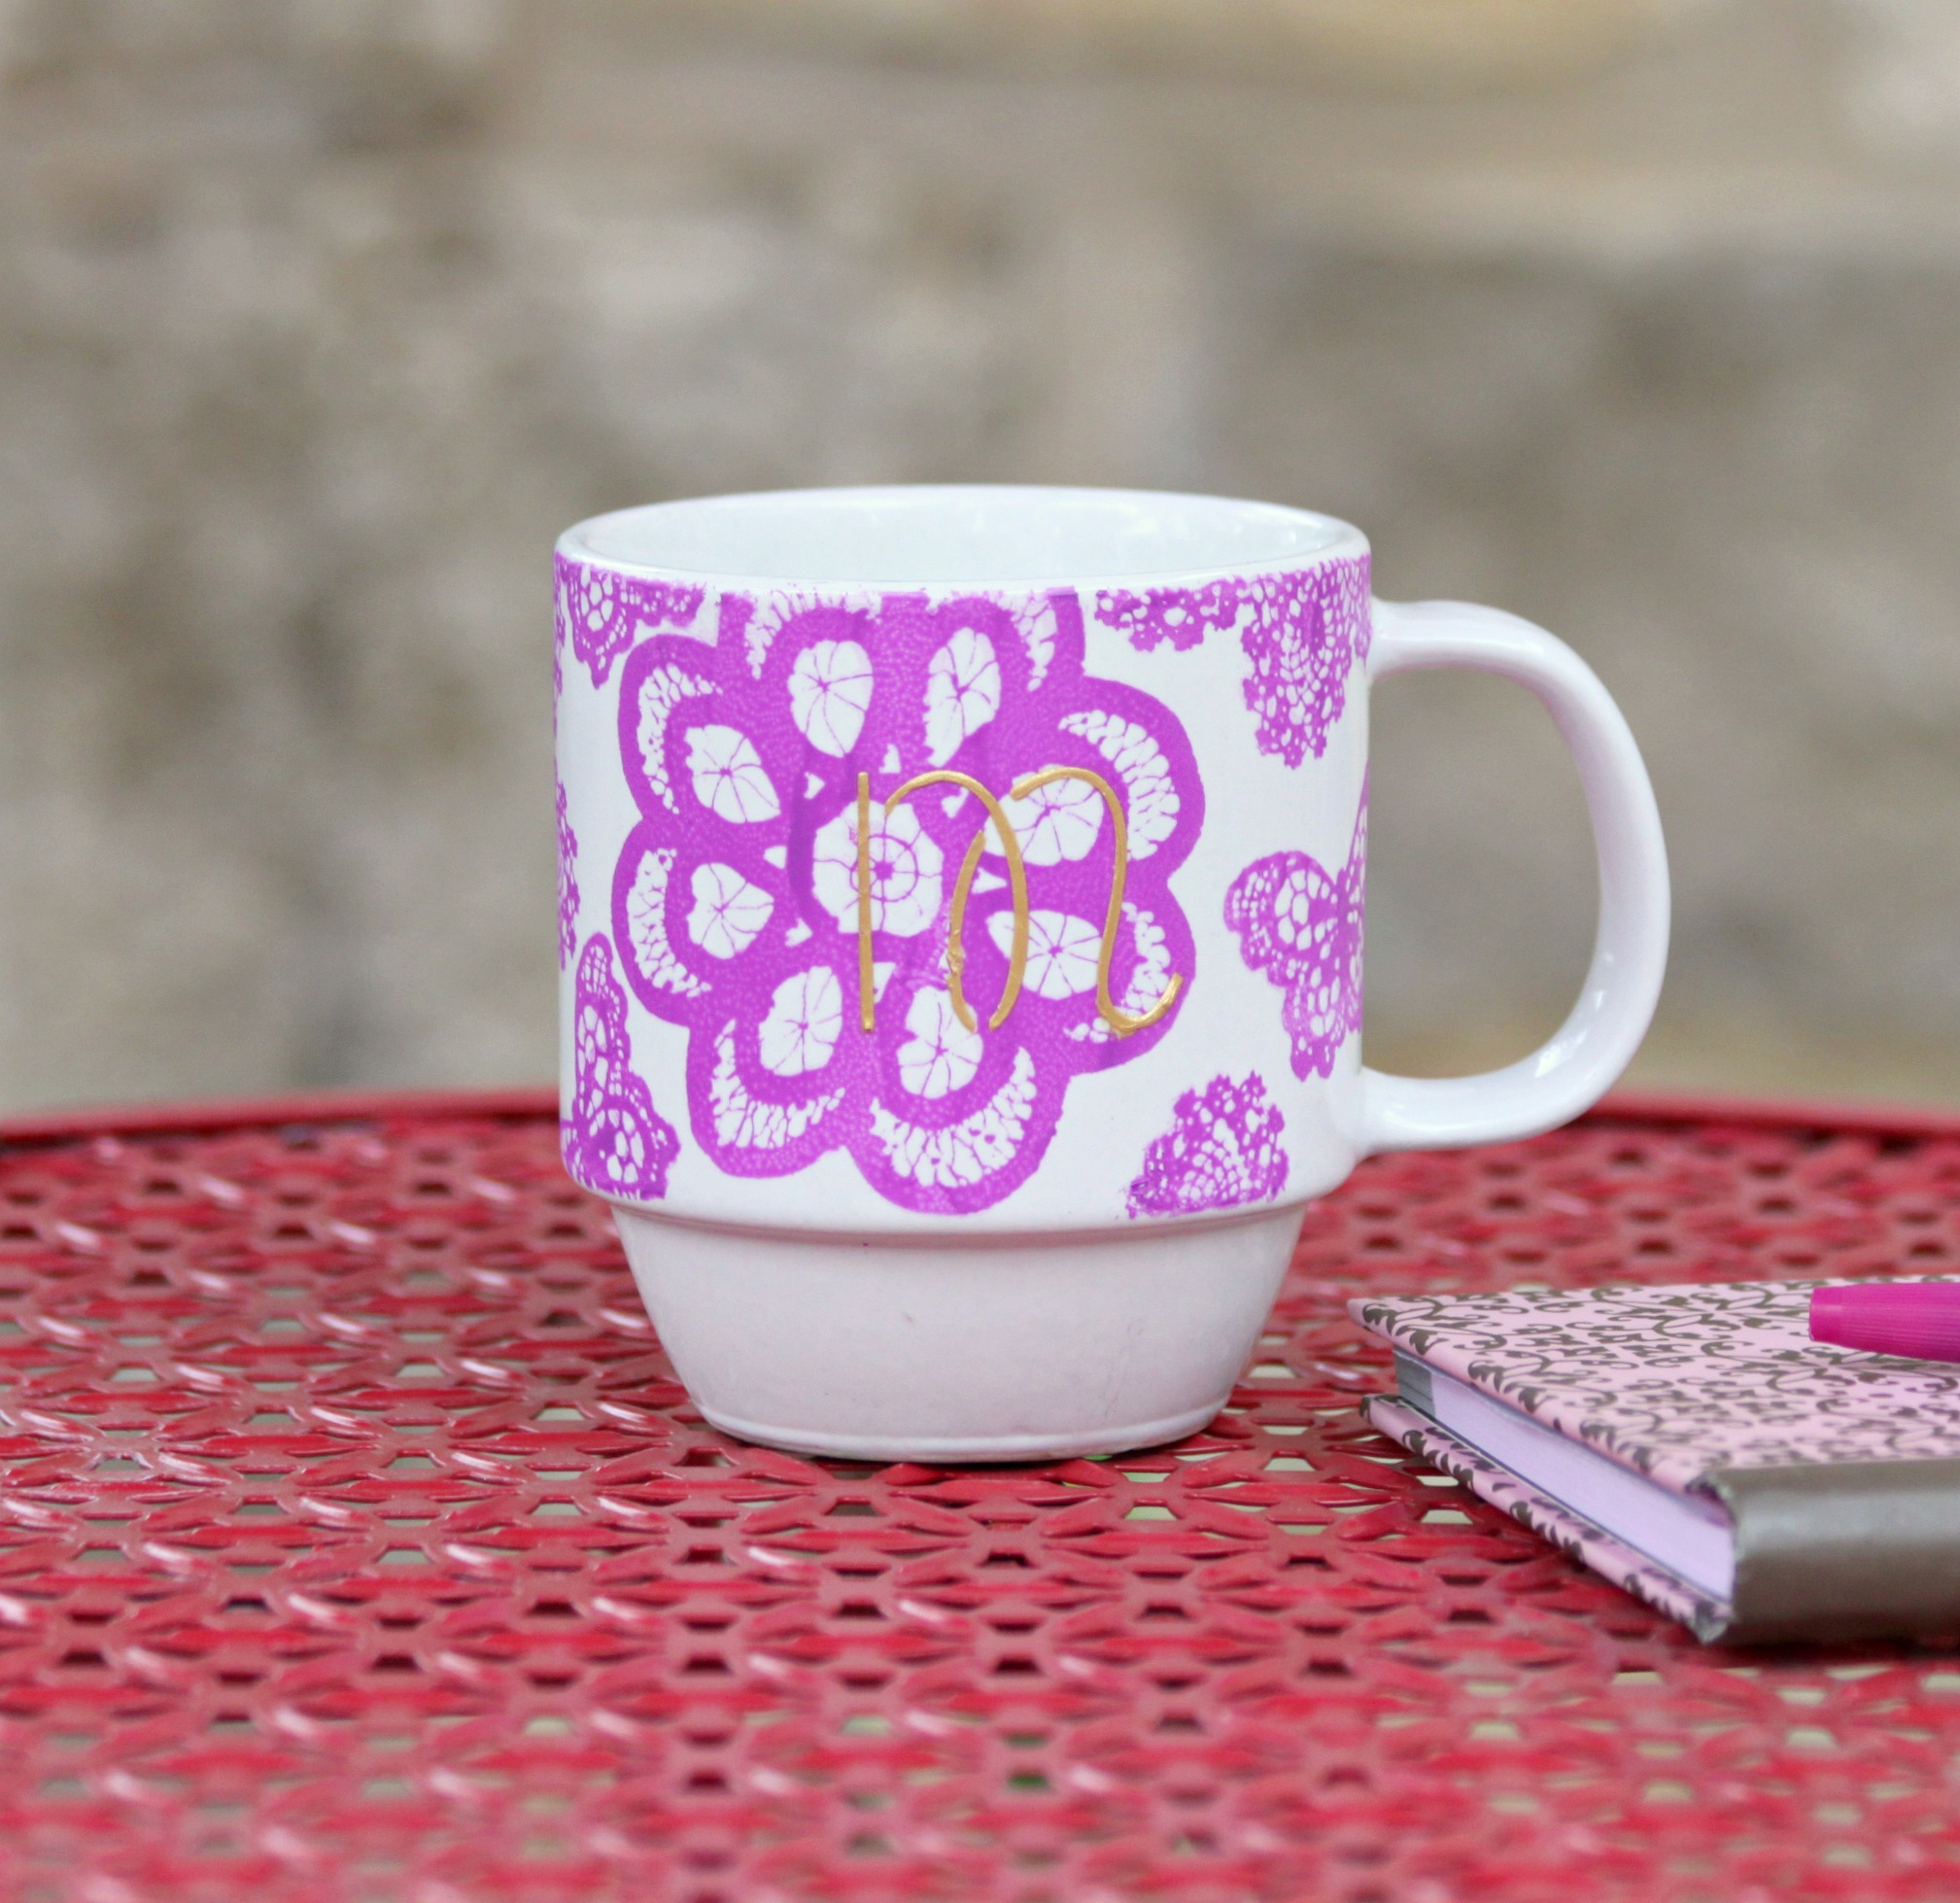 Make a gorgeous monogrammed mug by using silk screen stencils and glass paint from Martha Stewart.